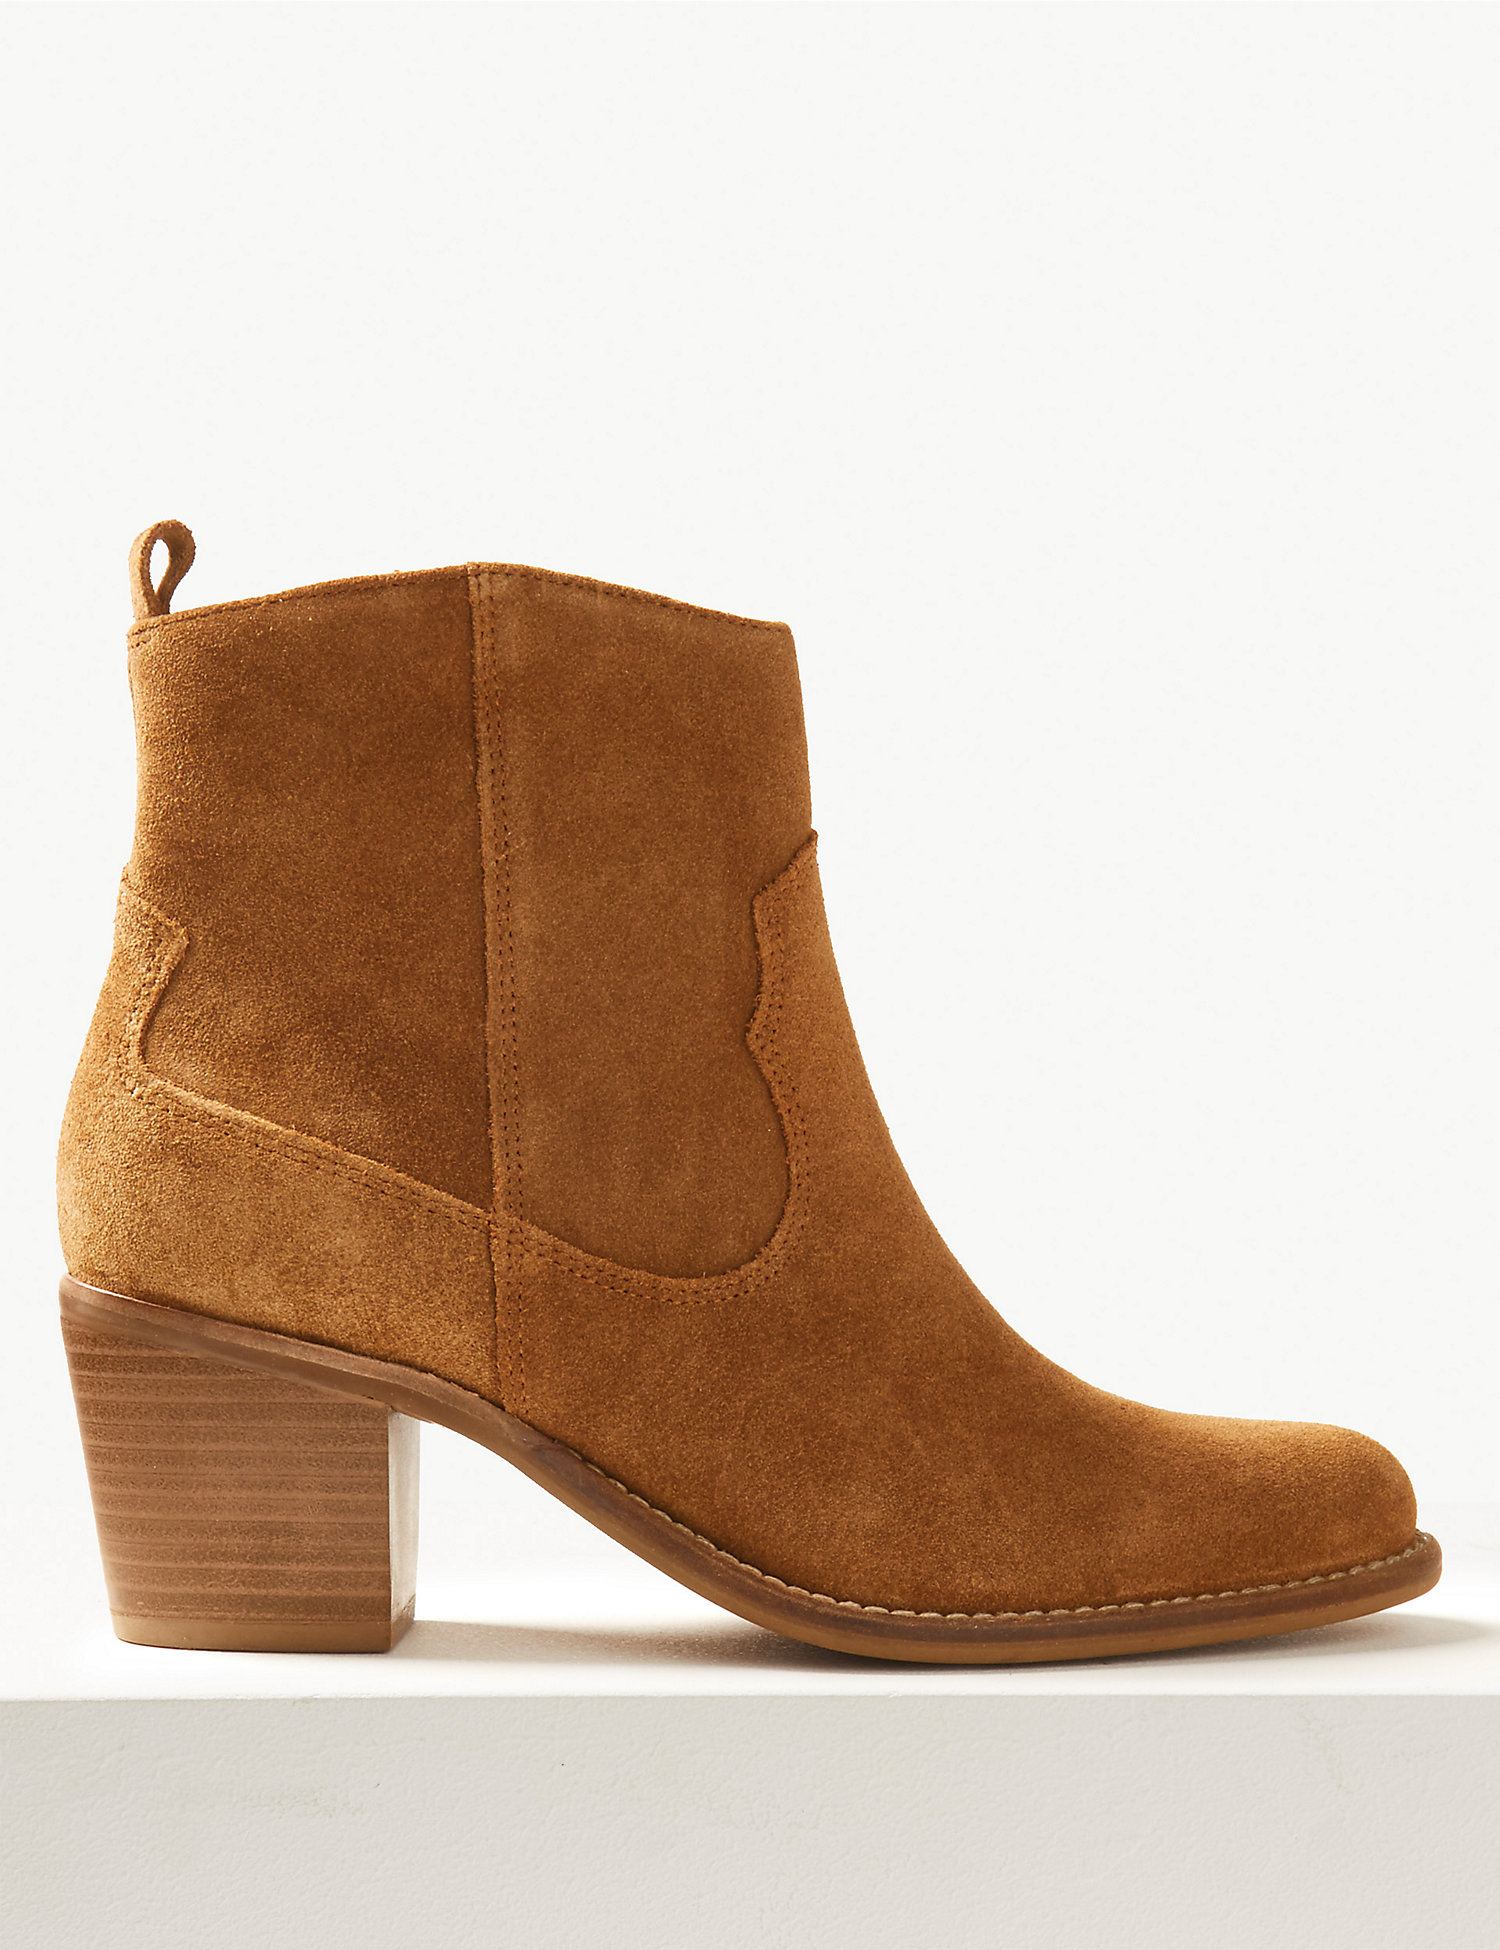 M&S Suede Western Style Boots £49.50